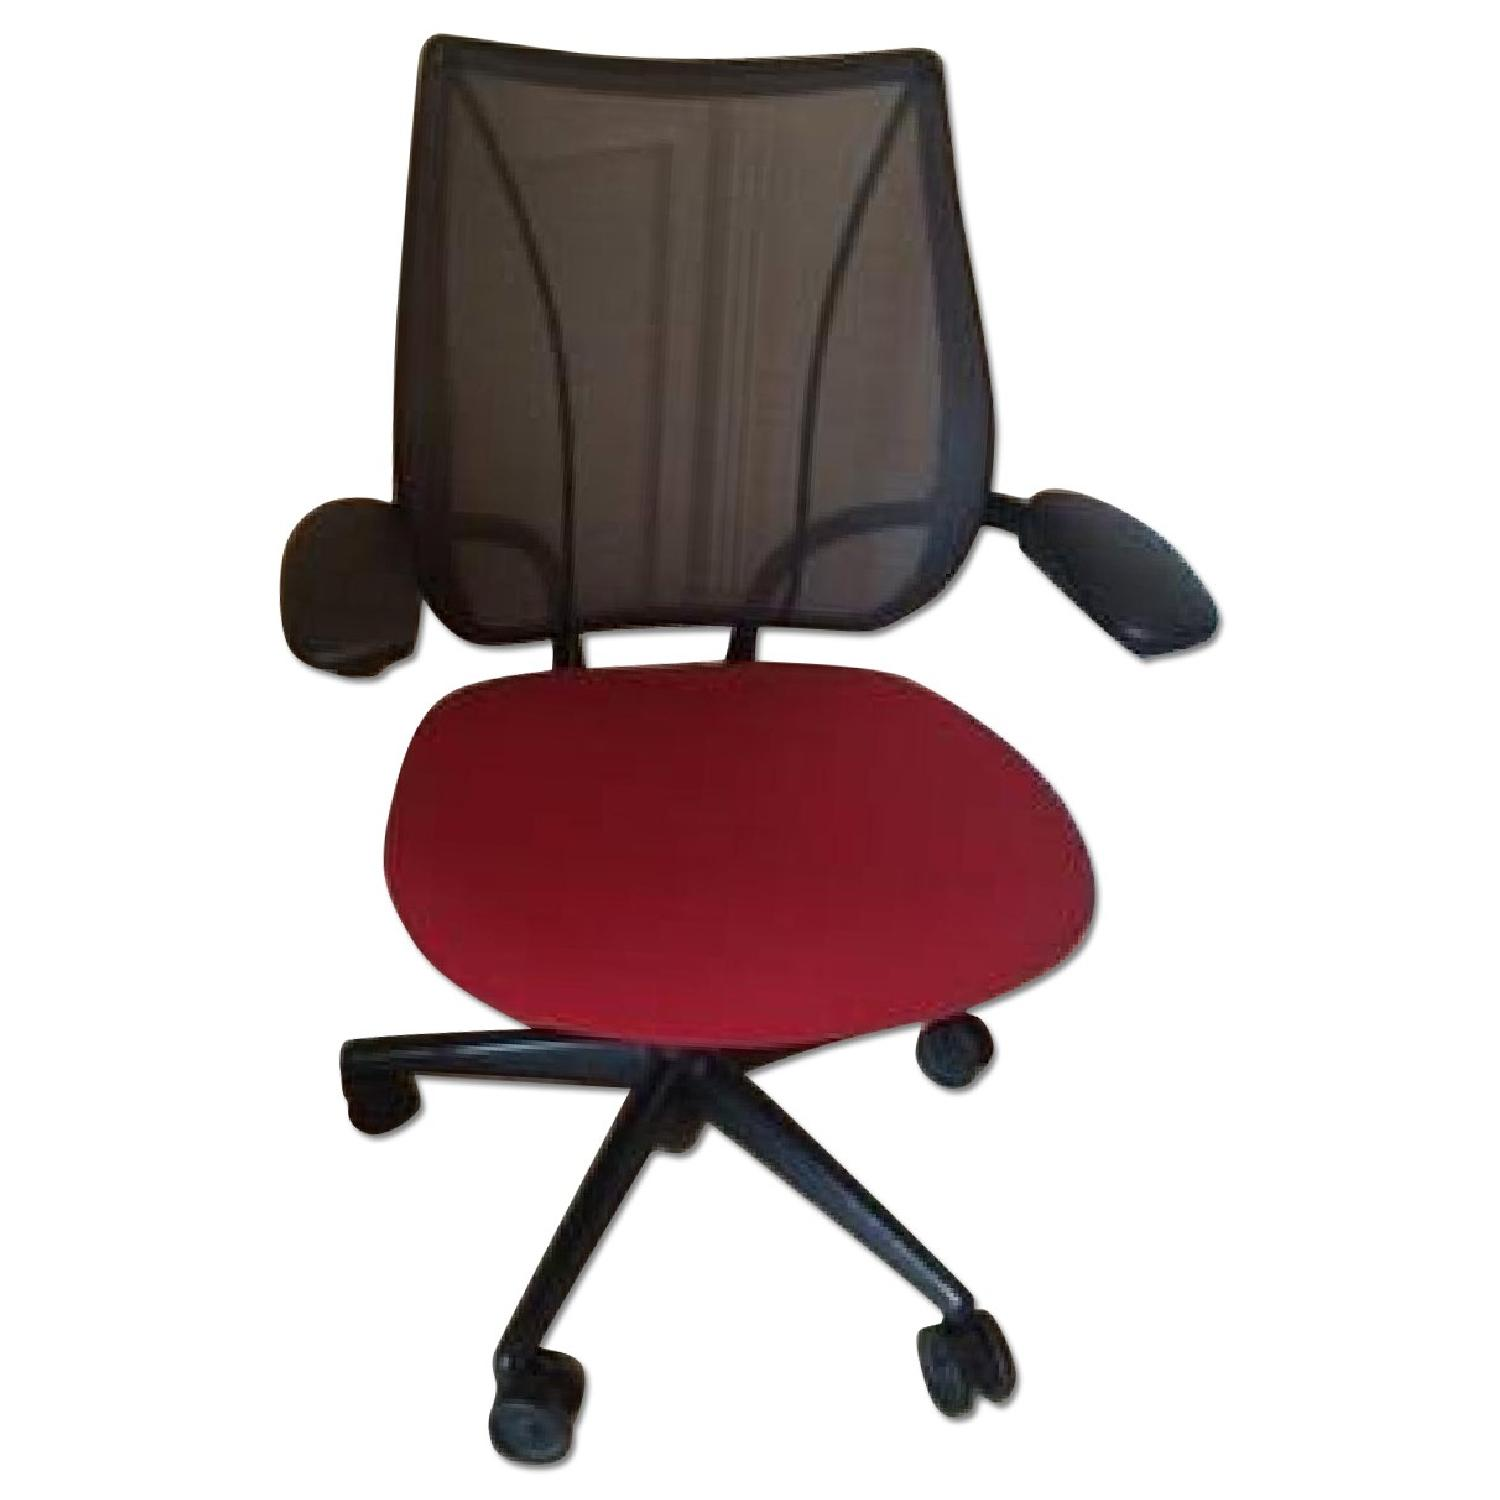 used design within reach chair for sale in nyc aptdeco